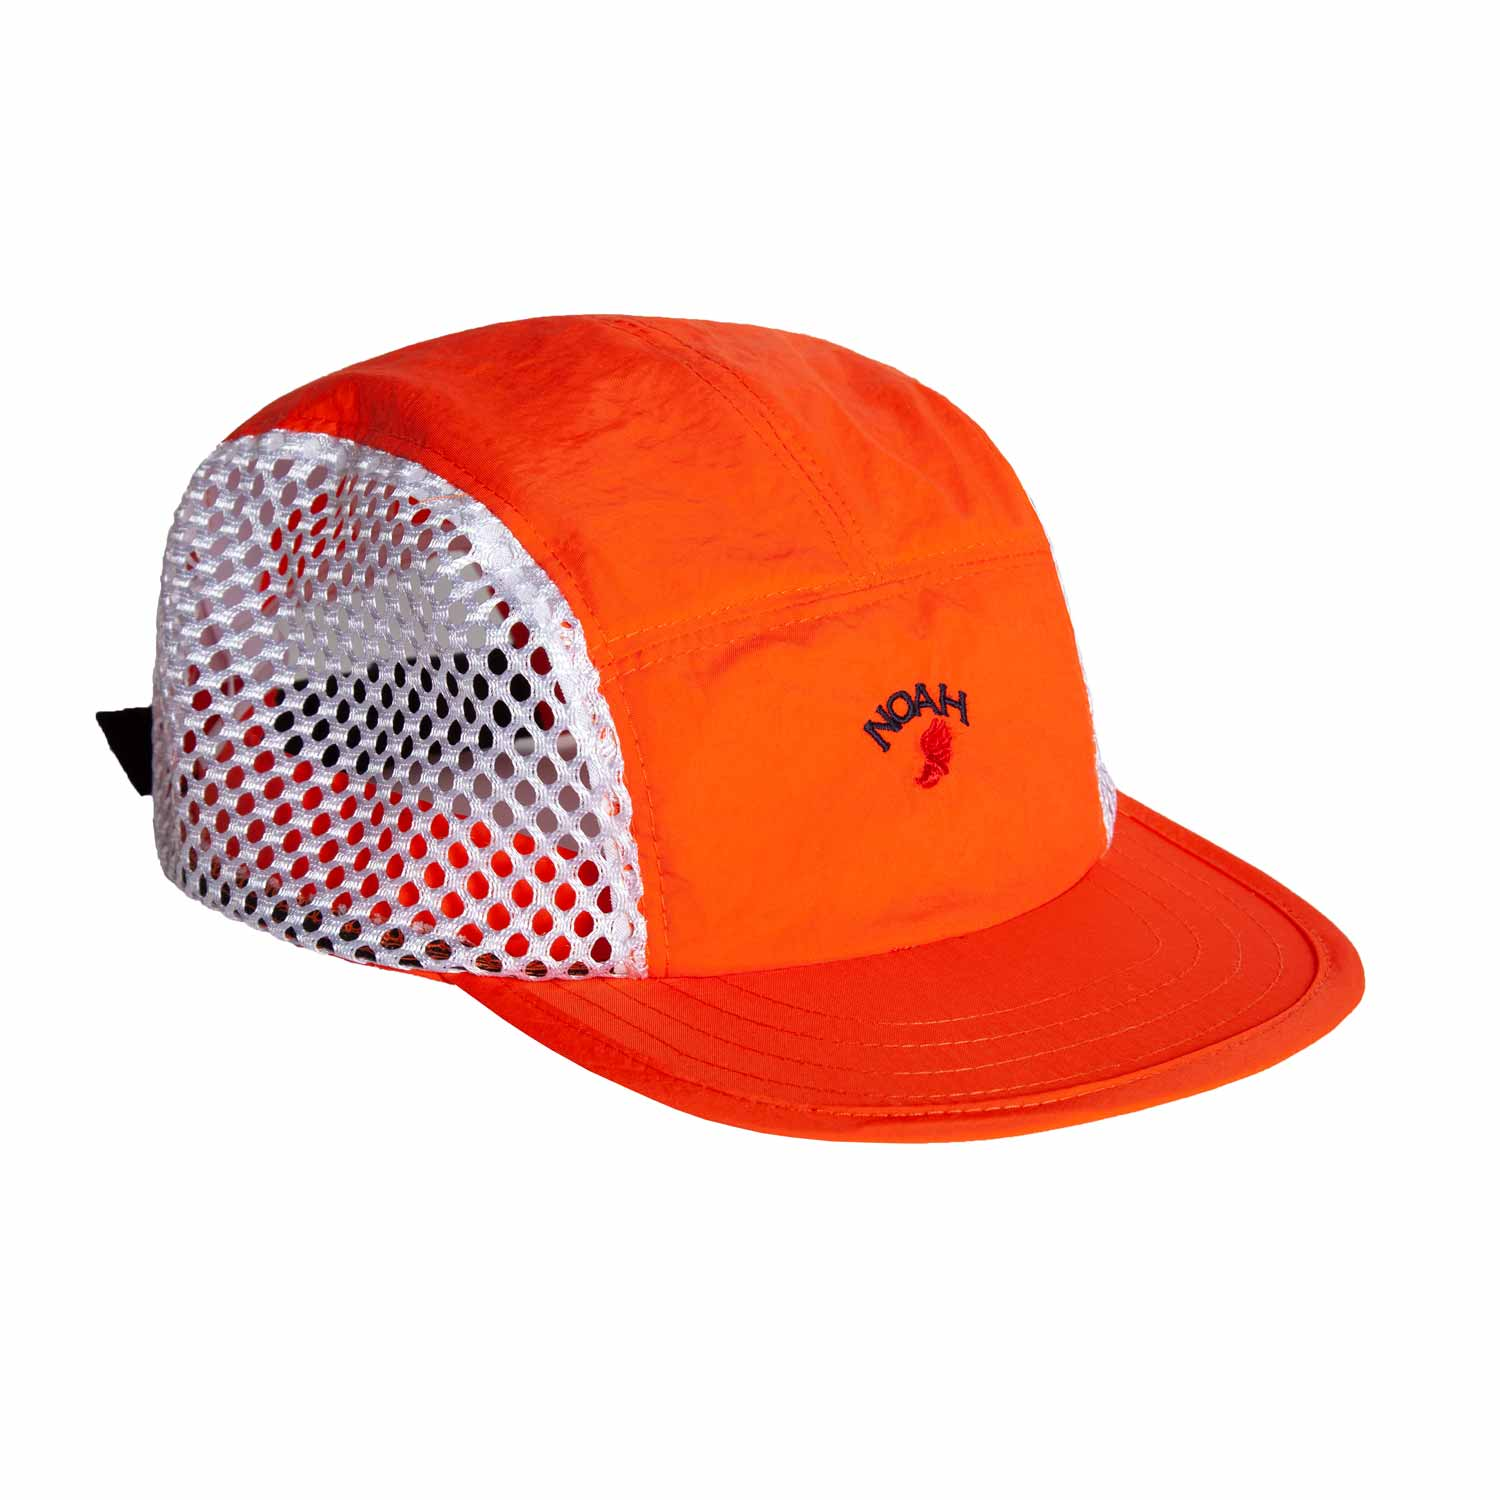 Winged Foot Running Cap